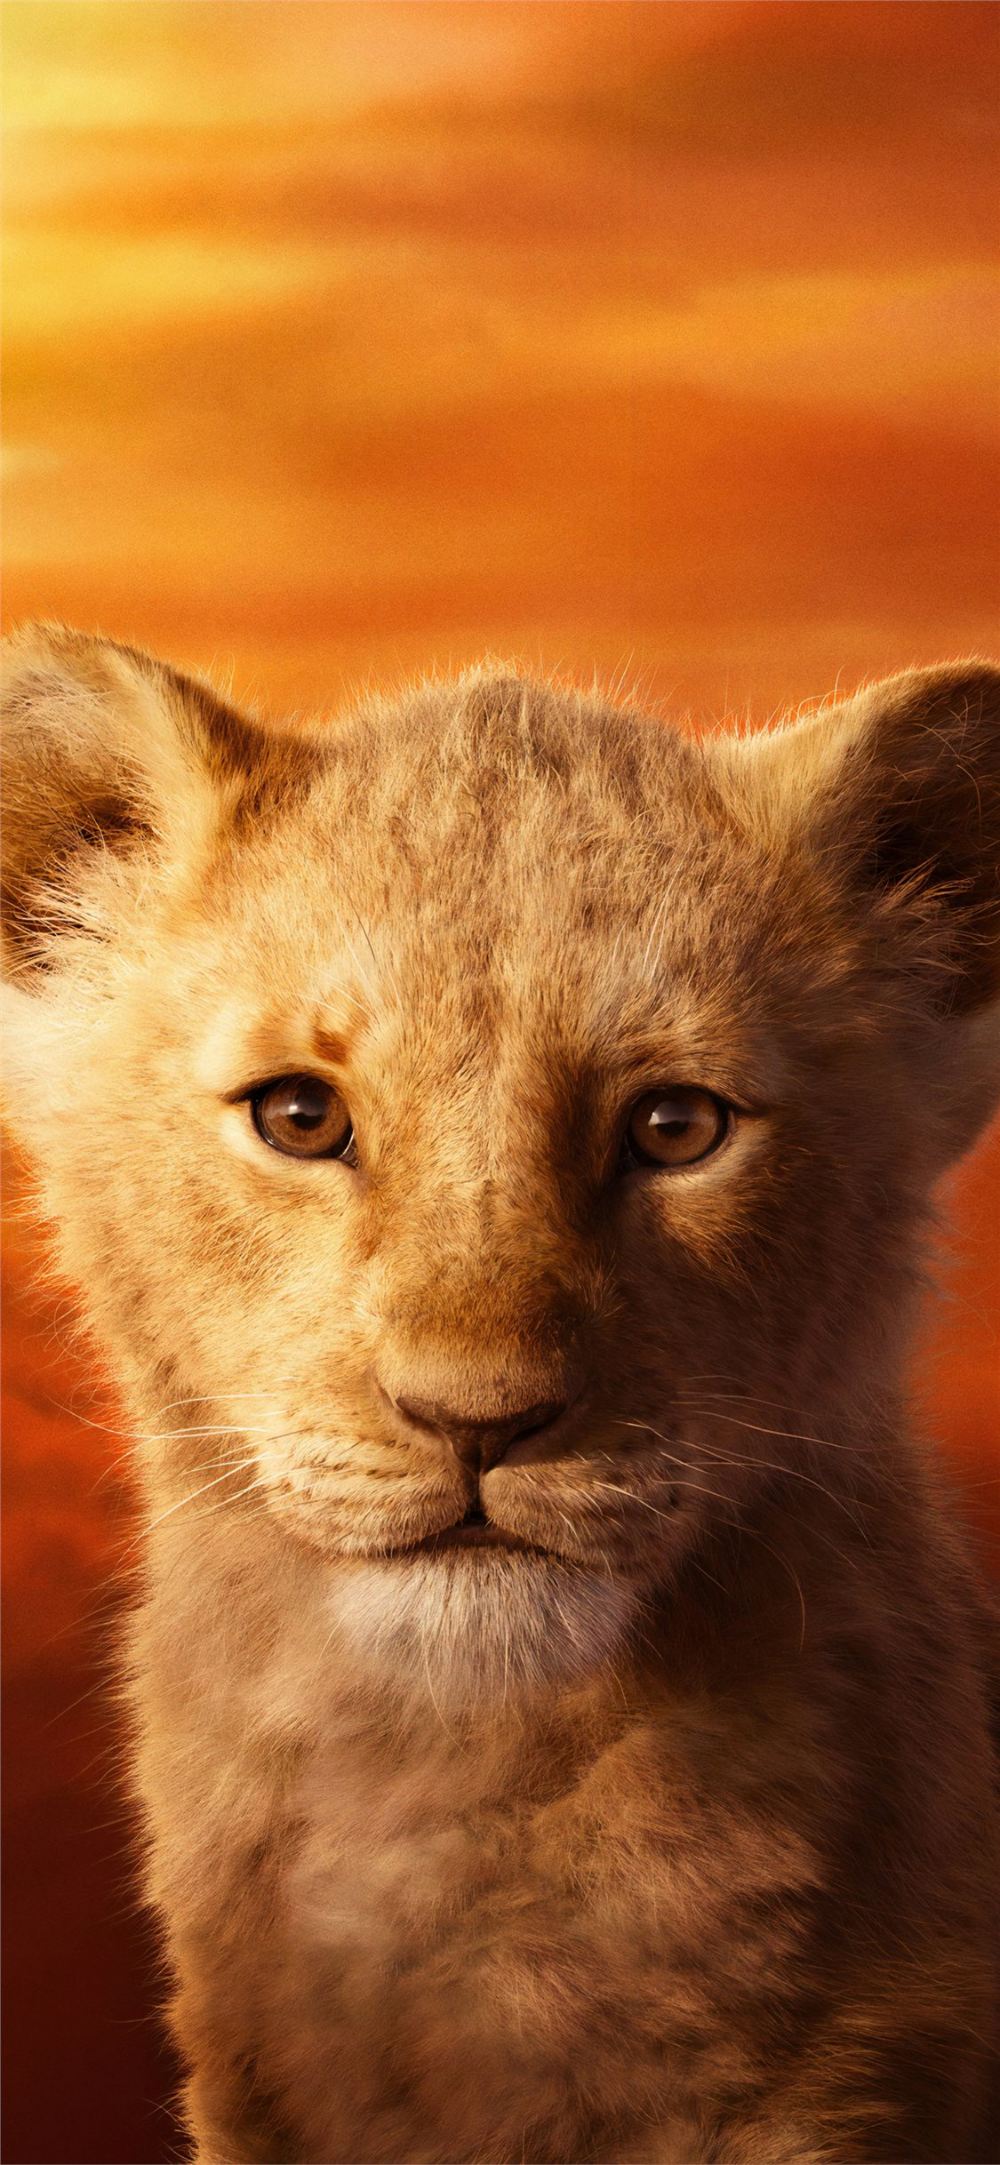 The Lion King Download